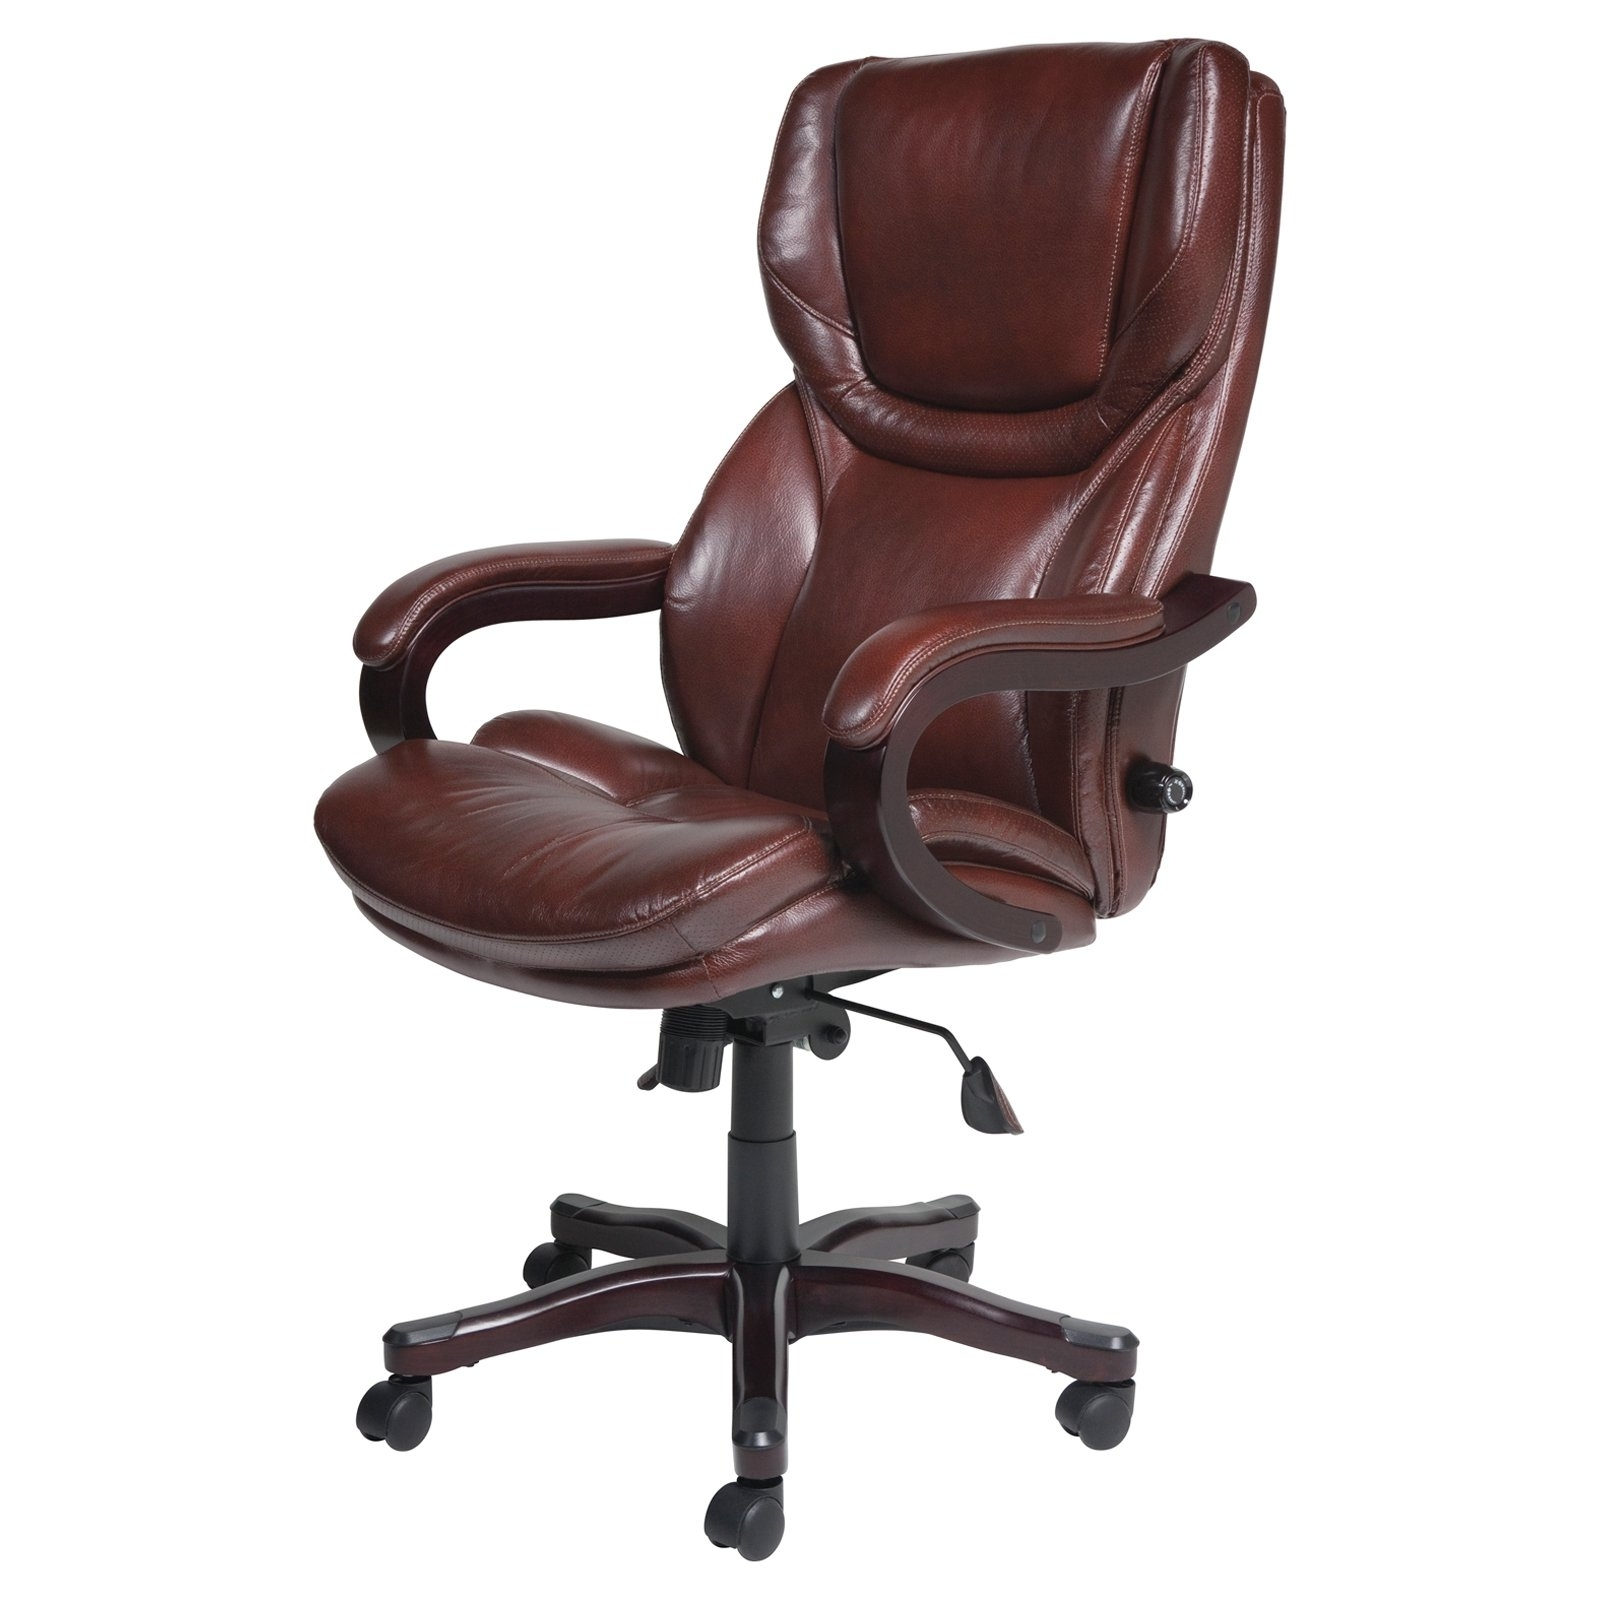 2019 Chair : Ergonomic Black Leather Executive Office Chair Verona For Wood And Leather Executive Office Chairs (View 2 of 20)